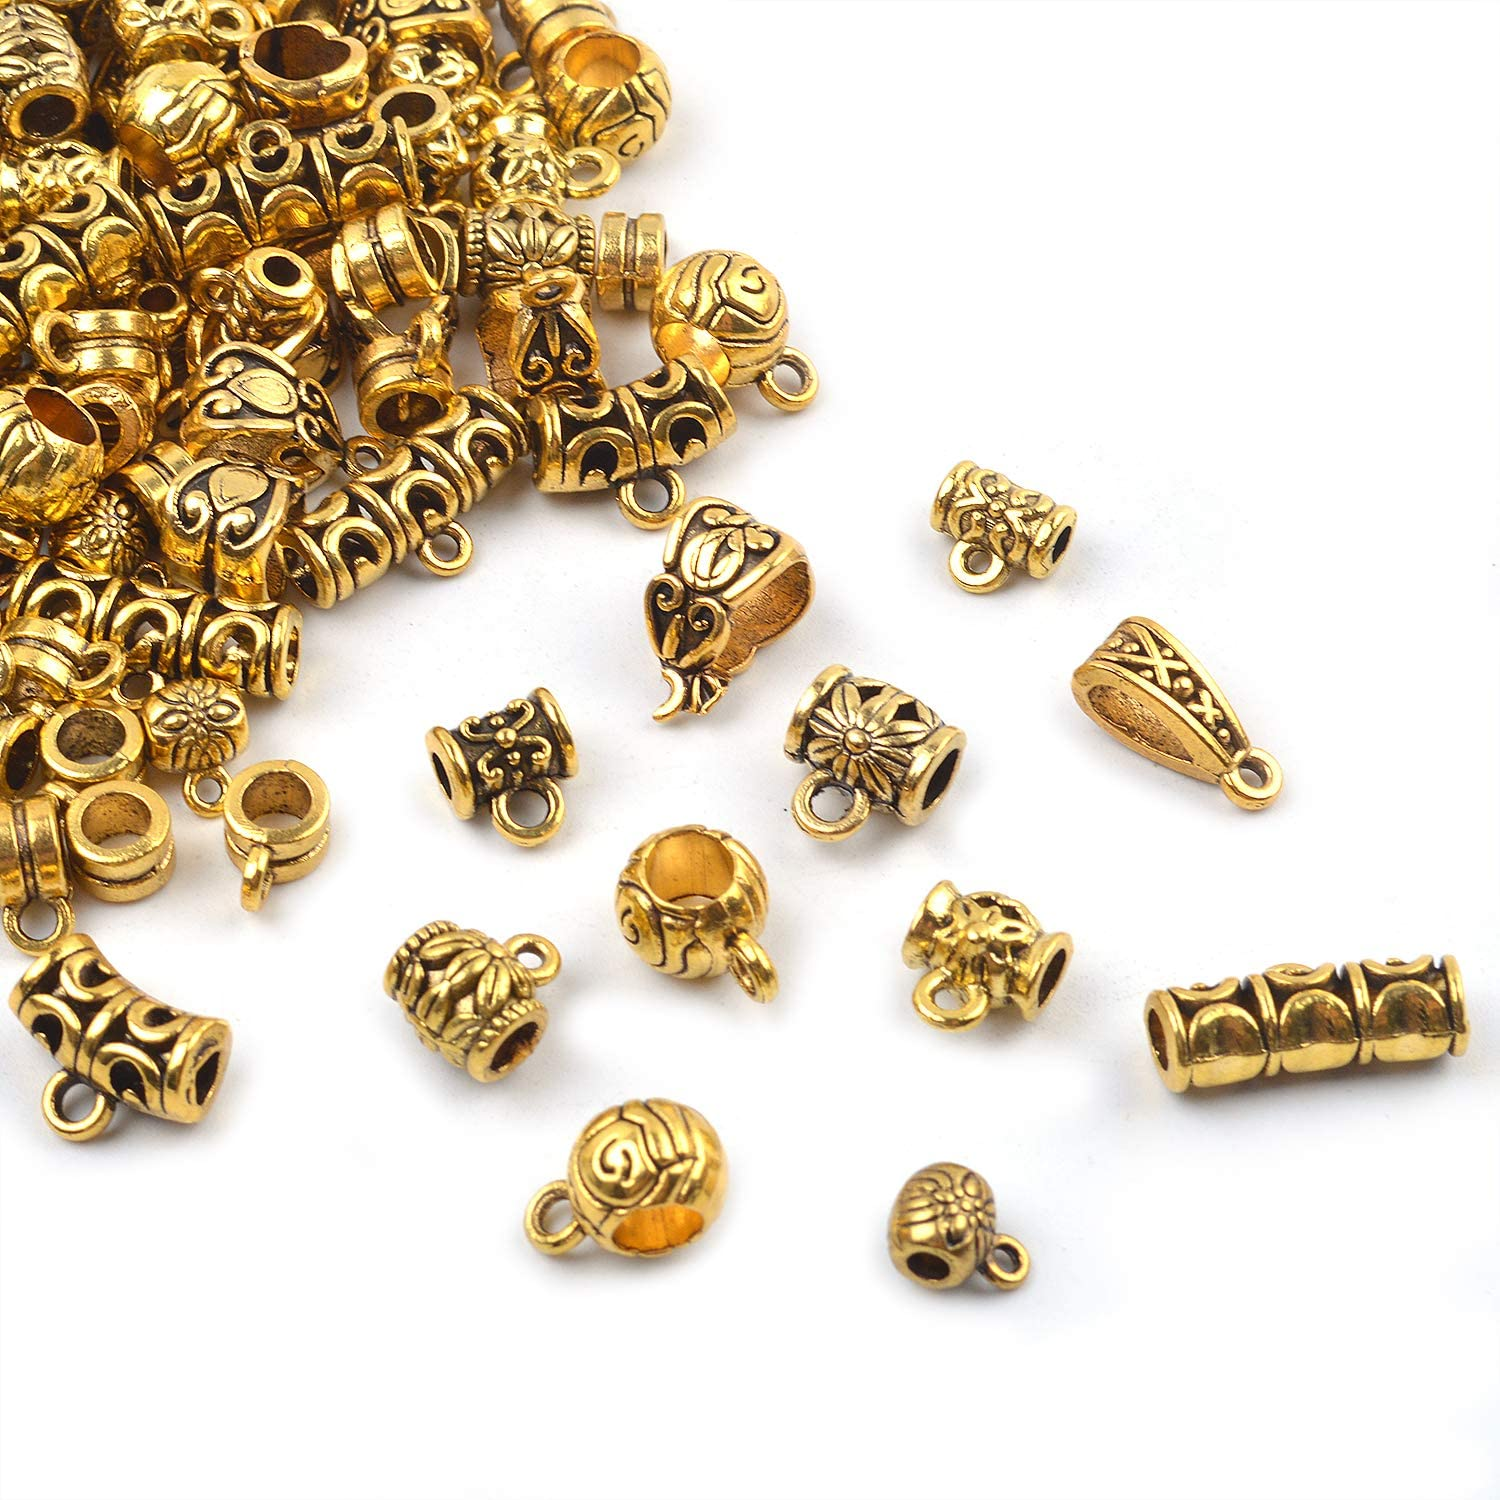 About 130-150pcs BronaGrand 100g Mixed Antique Gold Bail Beads,Spacer Bead,Bail Tube Beads,Bracelet Charms,Necklace Pendants for Jewelry and Craft Making